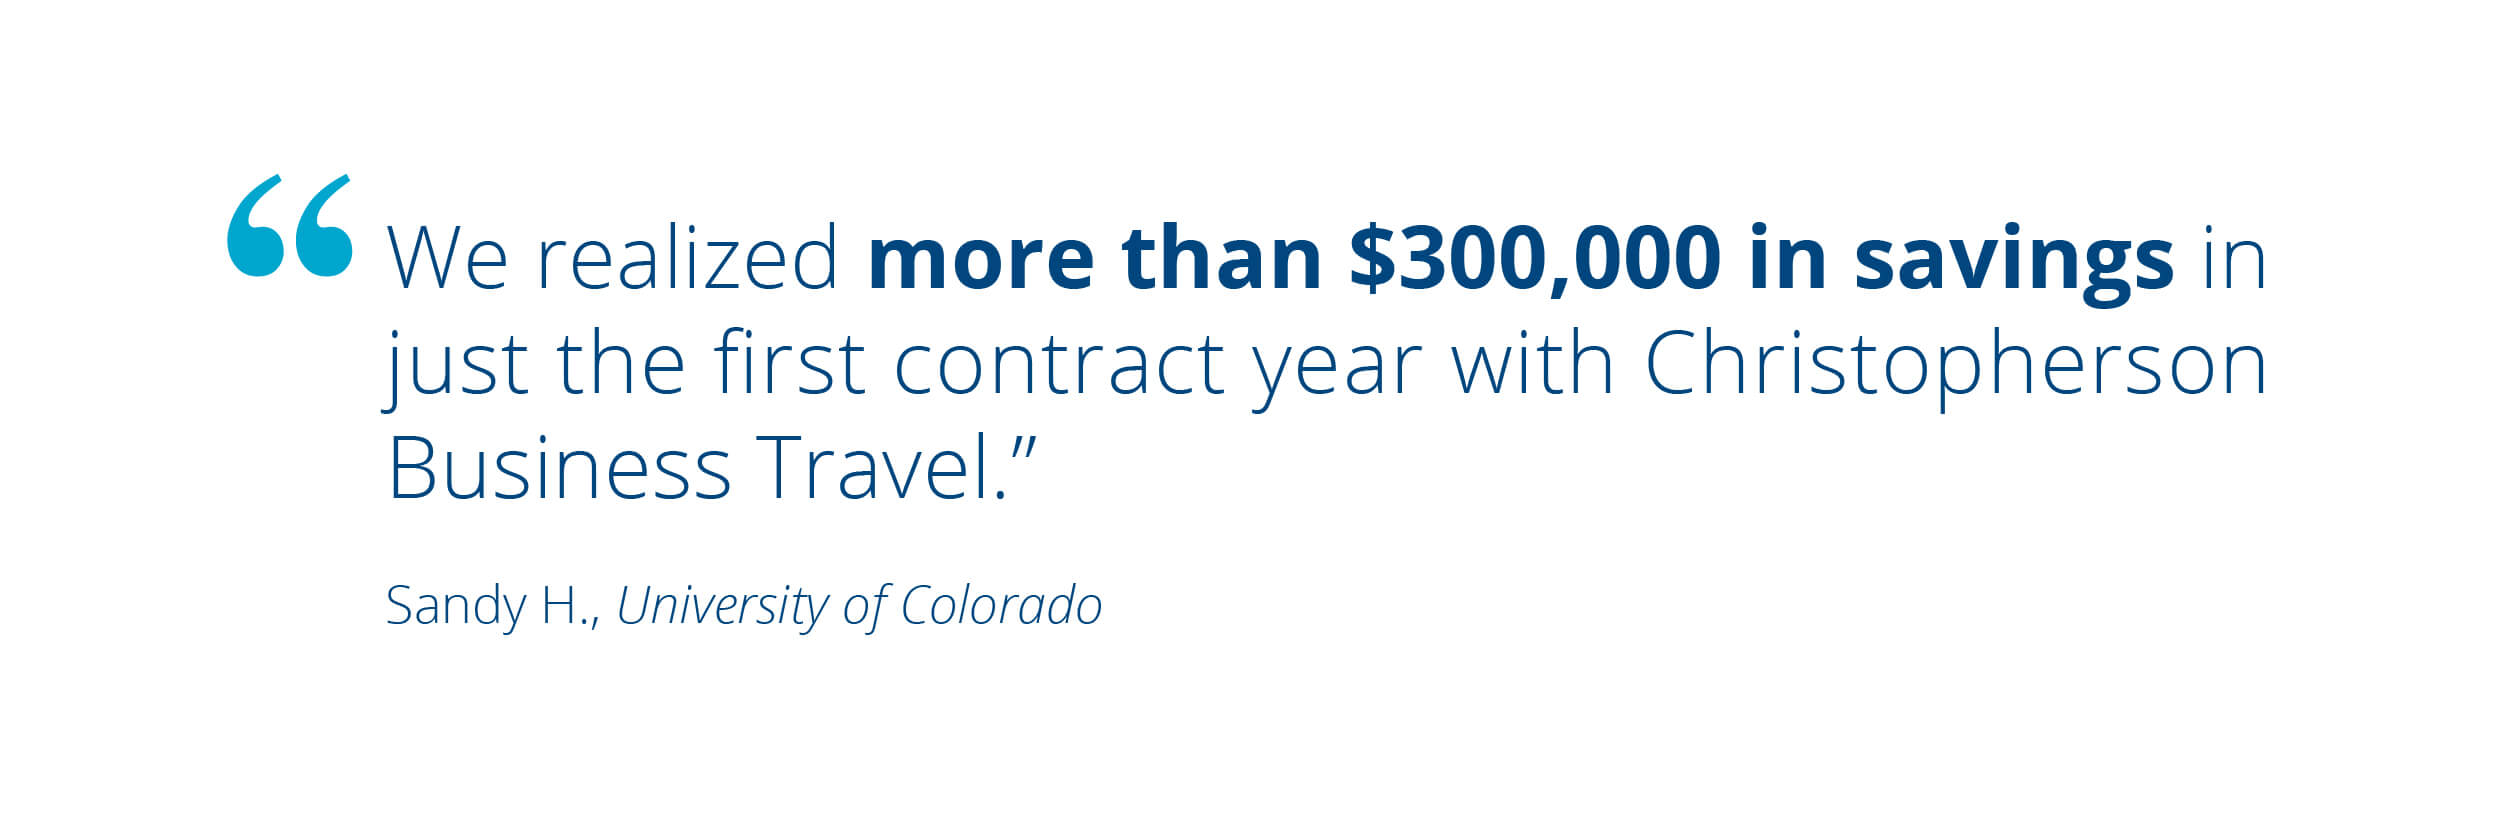 Cost Savings from University Corporate Travel Colorado